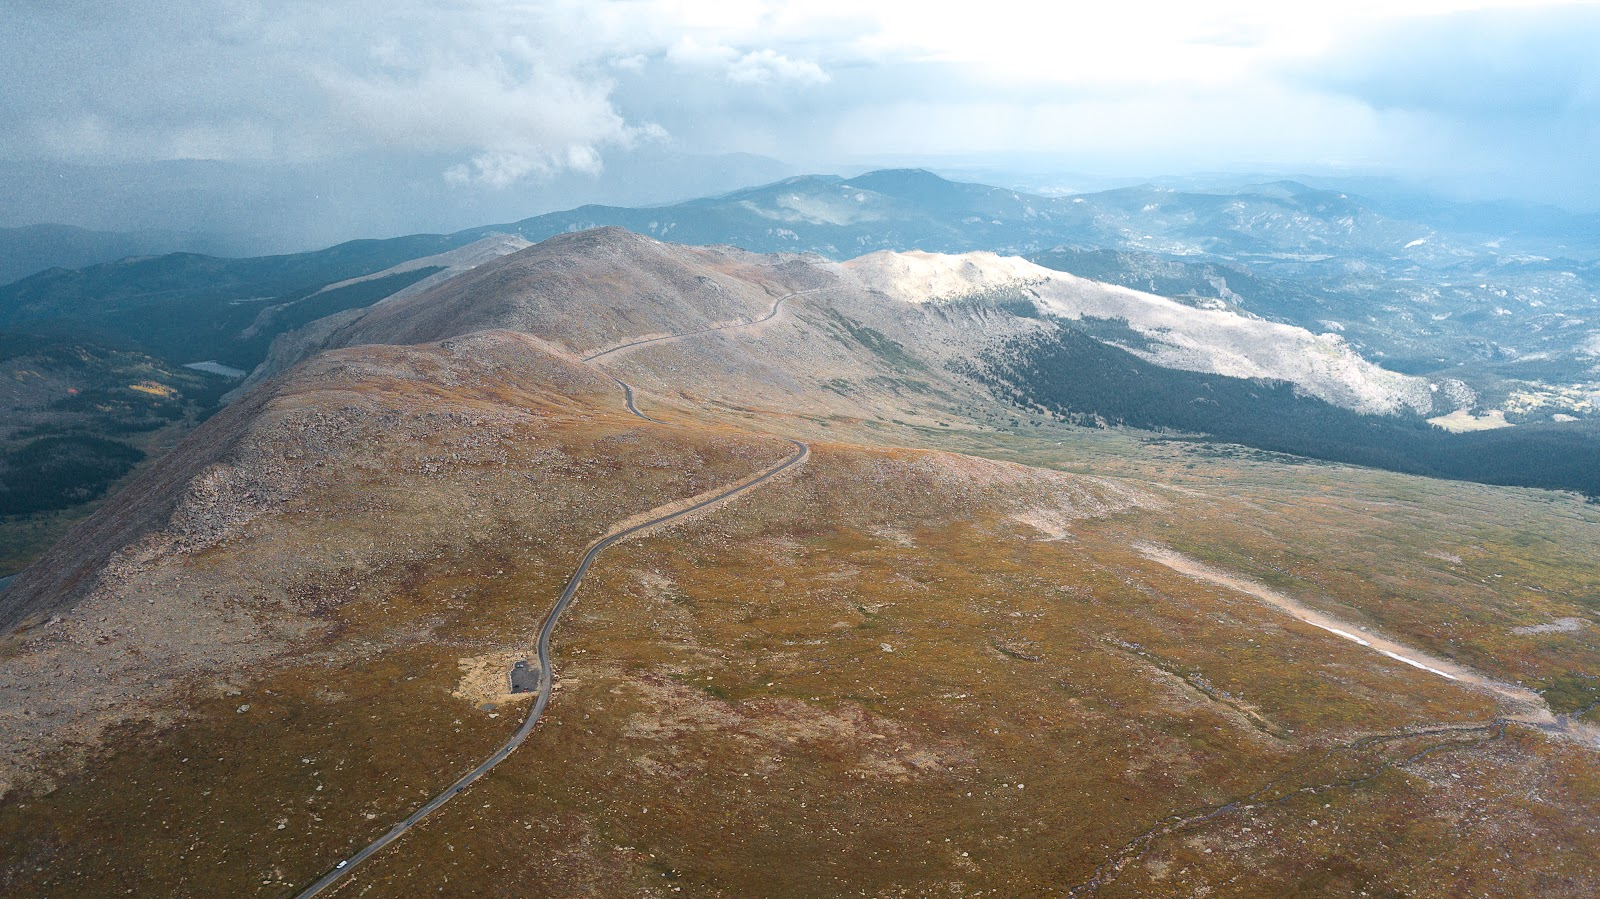 Bike climb Mt. Evans - aerial drone photo just before Summit Lake - roadway and mountains